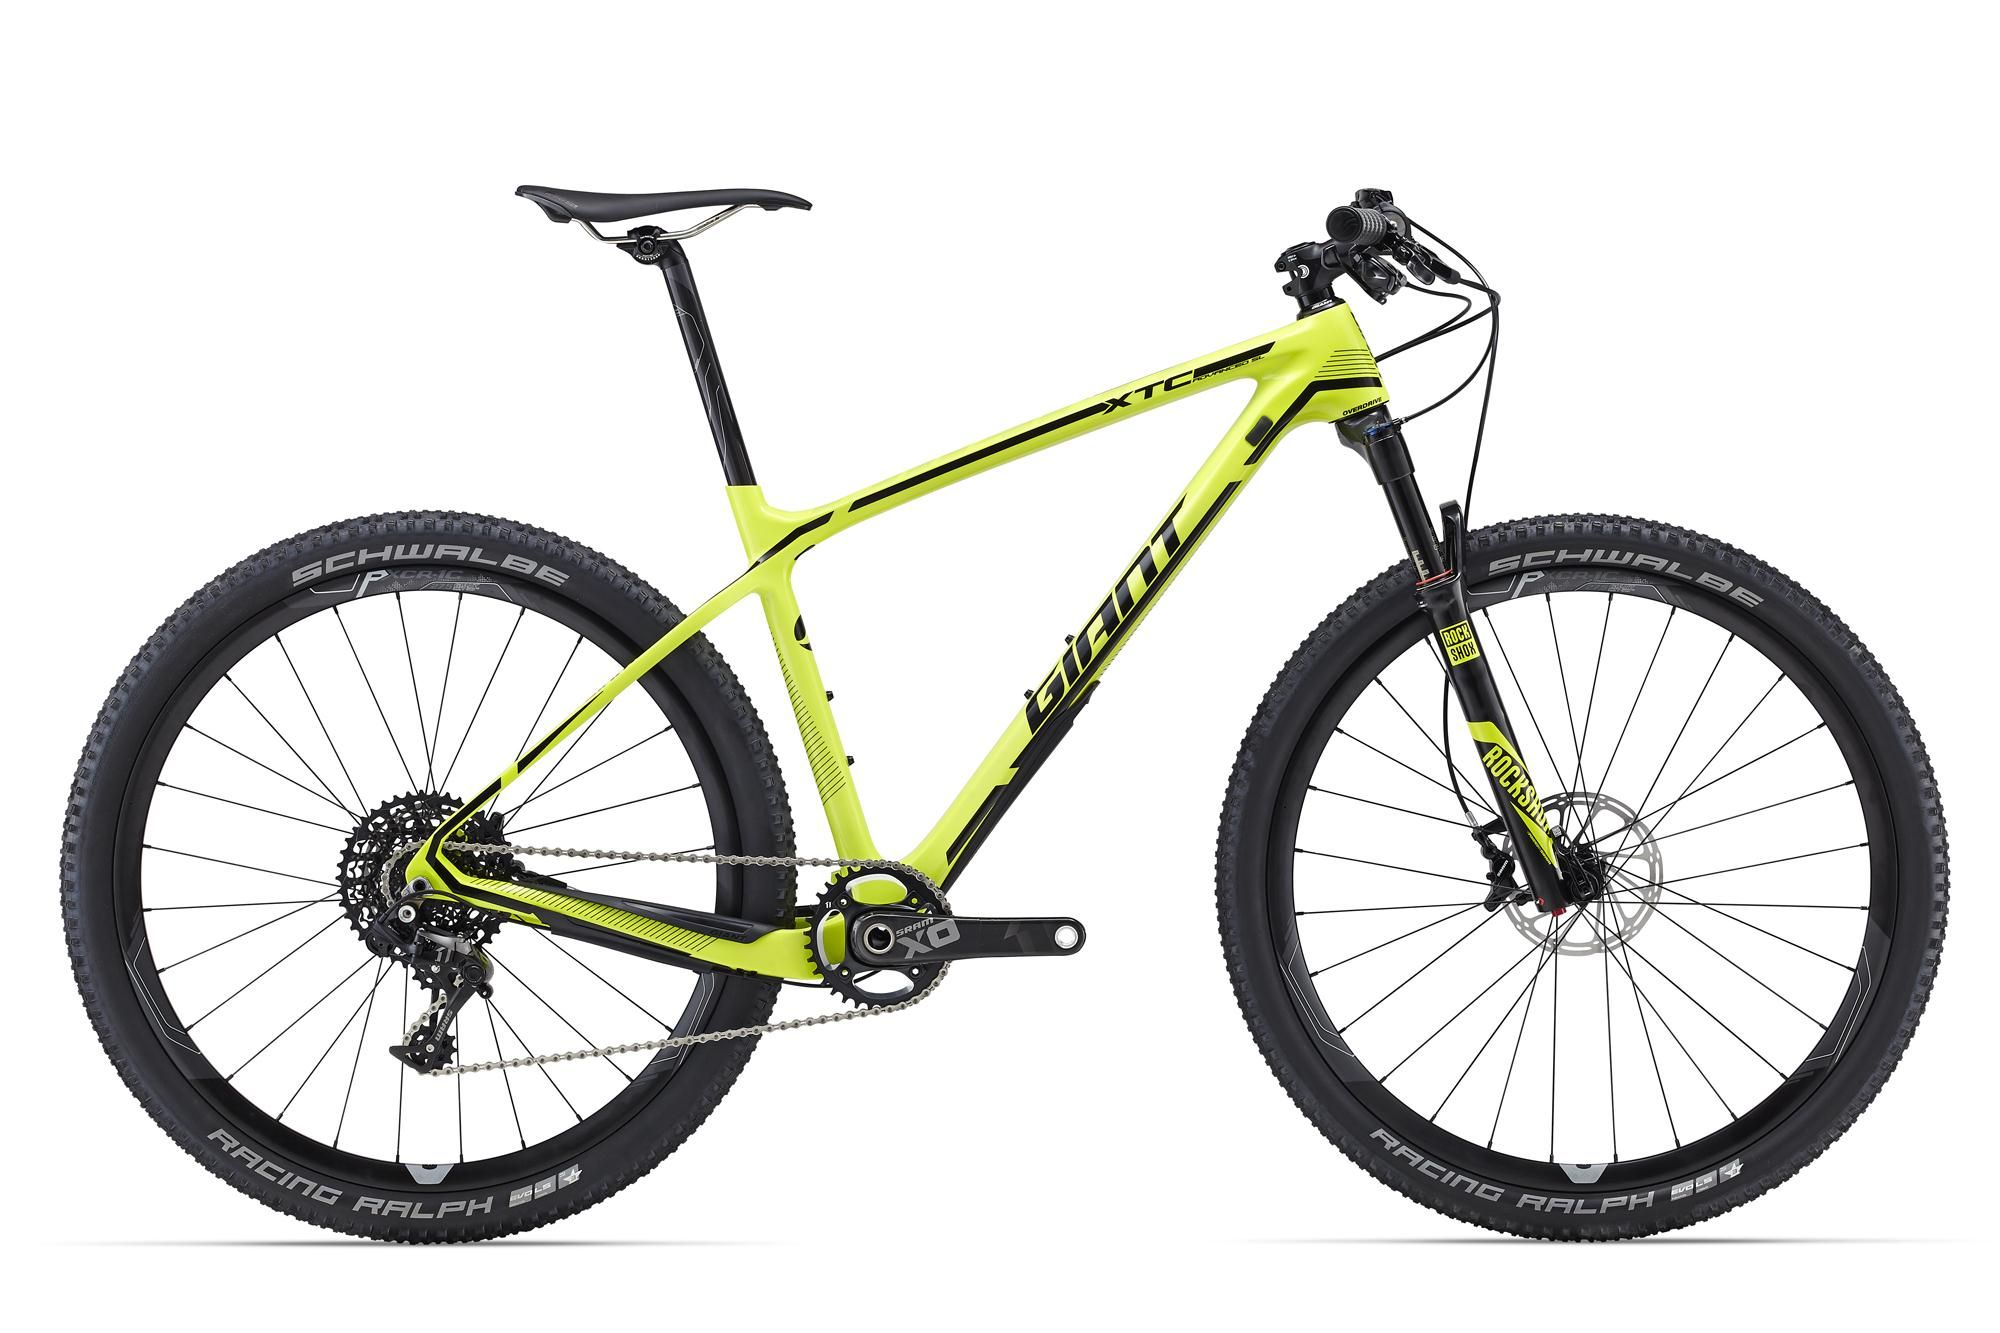 Велосипед Giant XtC Advanced SL 27.5 1 2016 велосипед giant trinity advanced pro 0 2016